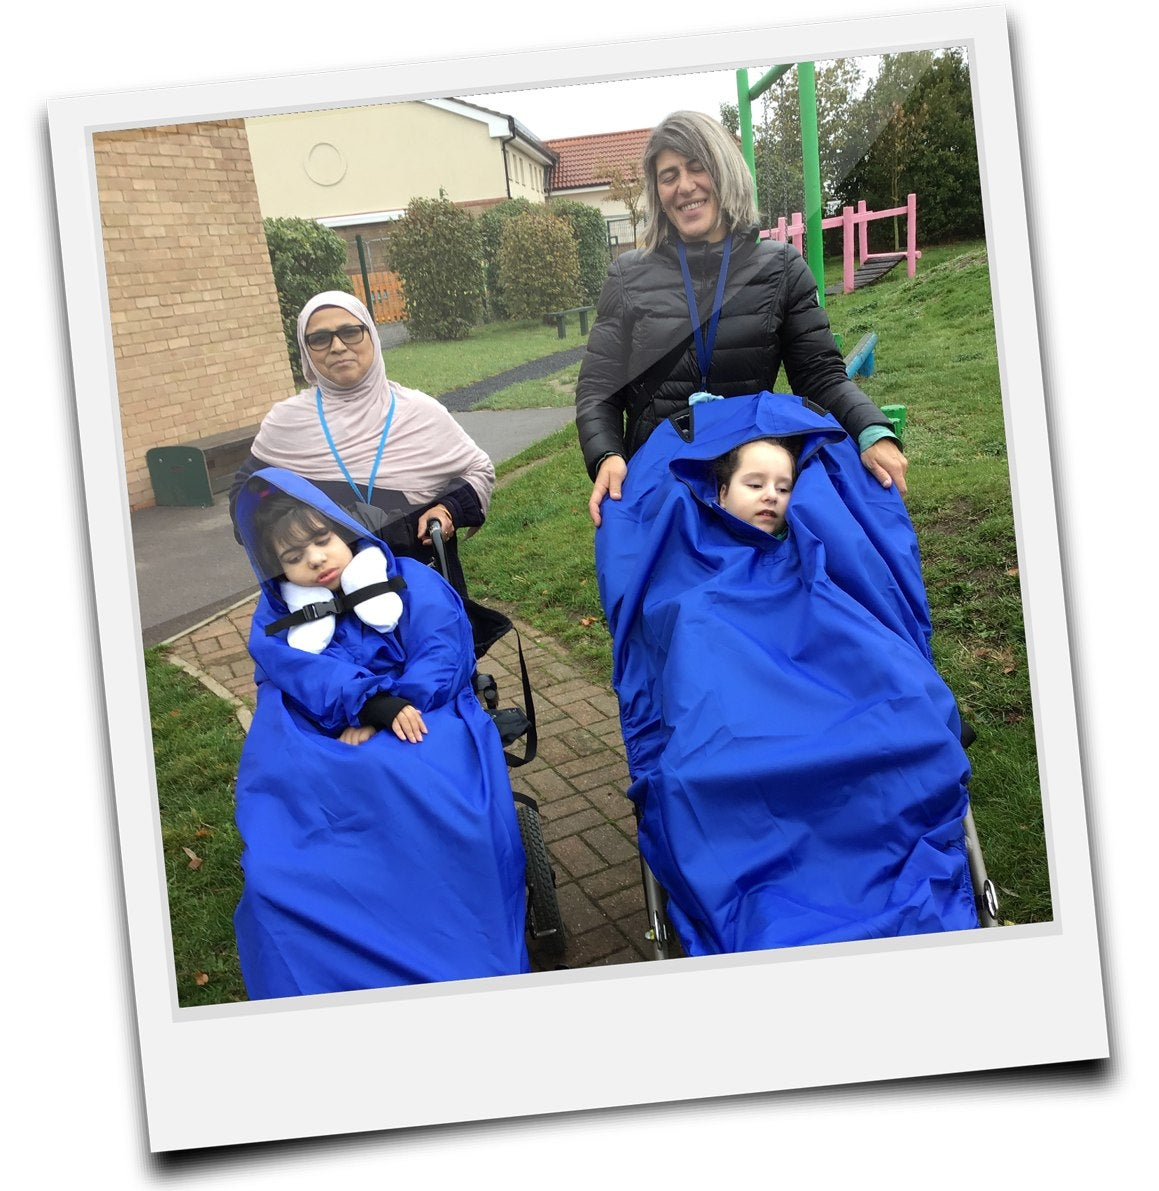 Two children wrapped up snugly in the donated wheelchair ponchos